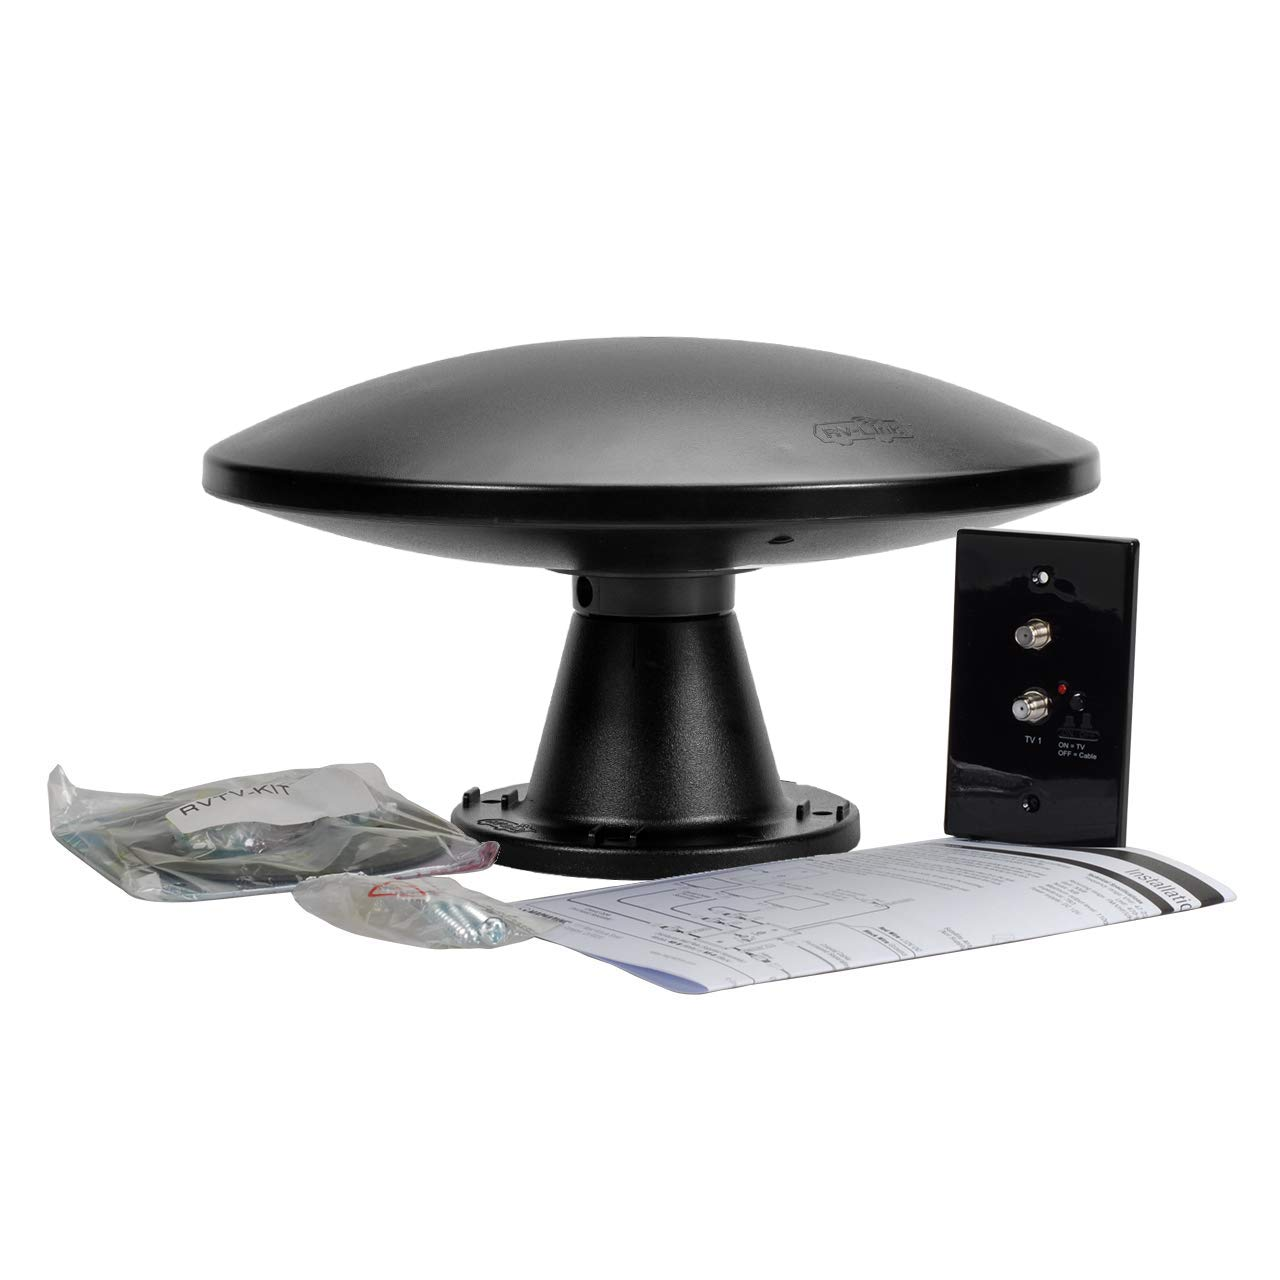 Magnadyne RVTV-B2 Omni-Directional Amplified TV/AM/FM Antenna and Distribution Plate Black by MobileVision (Image #1)